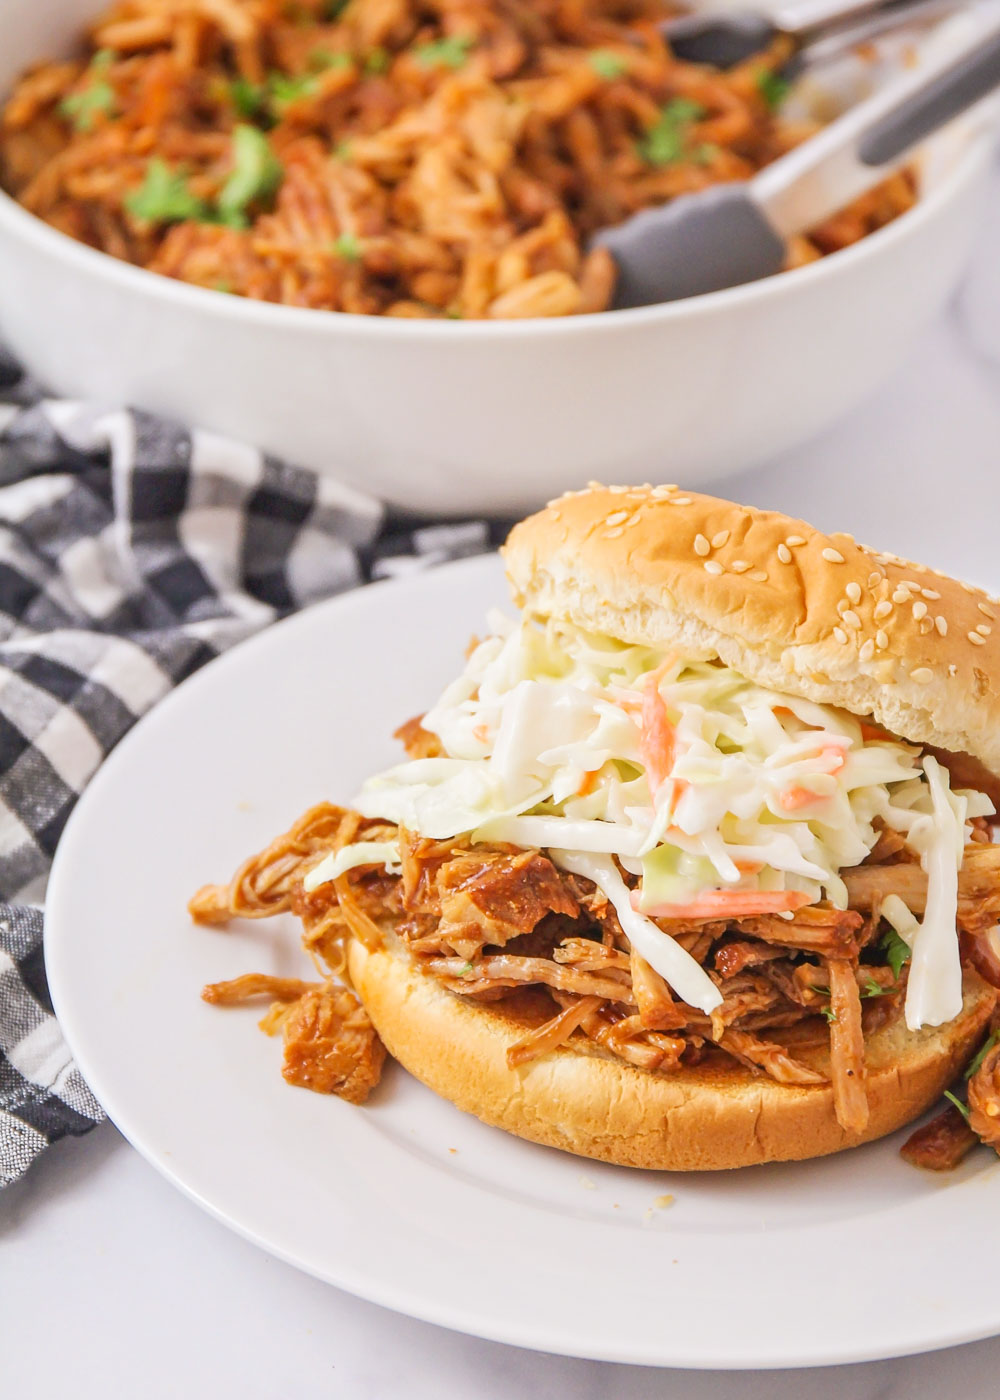 Instant Pot Pulled Pork on a bun topped with coleslaw